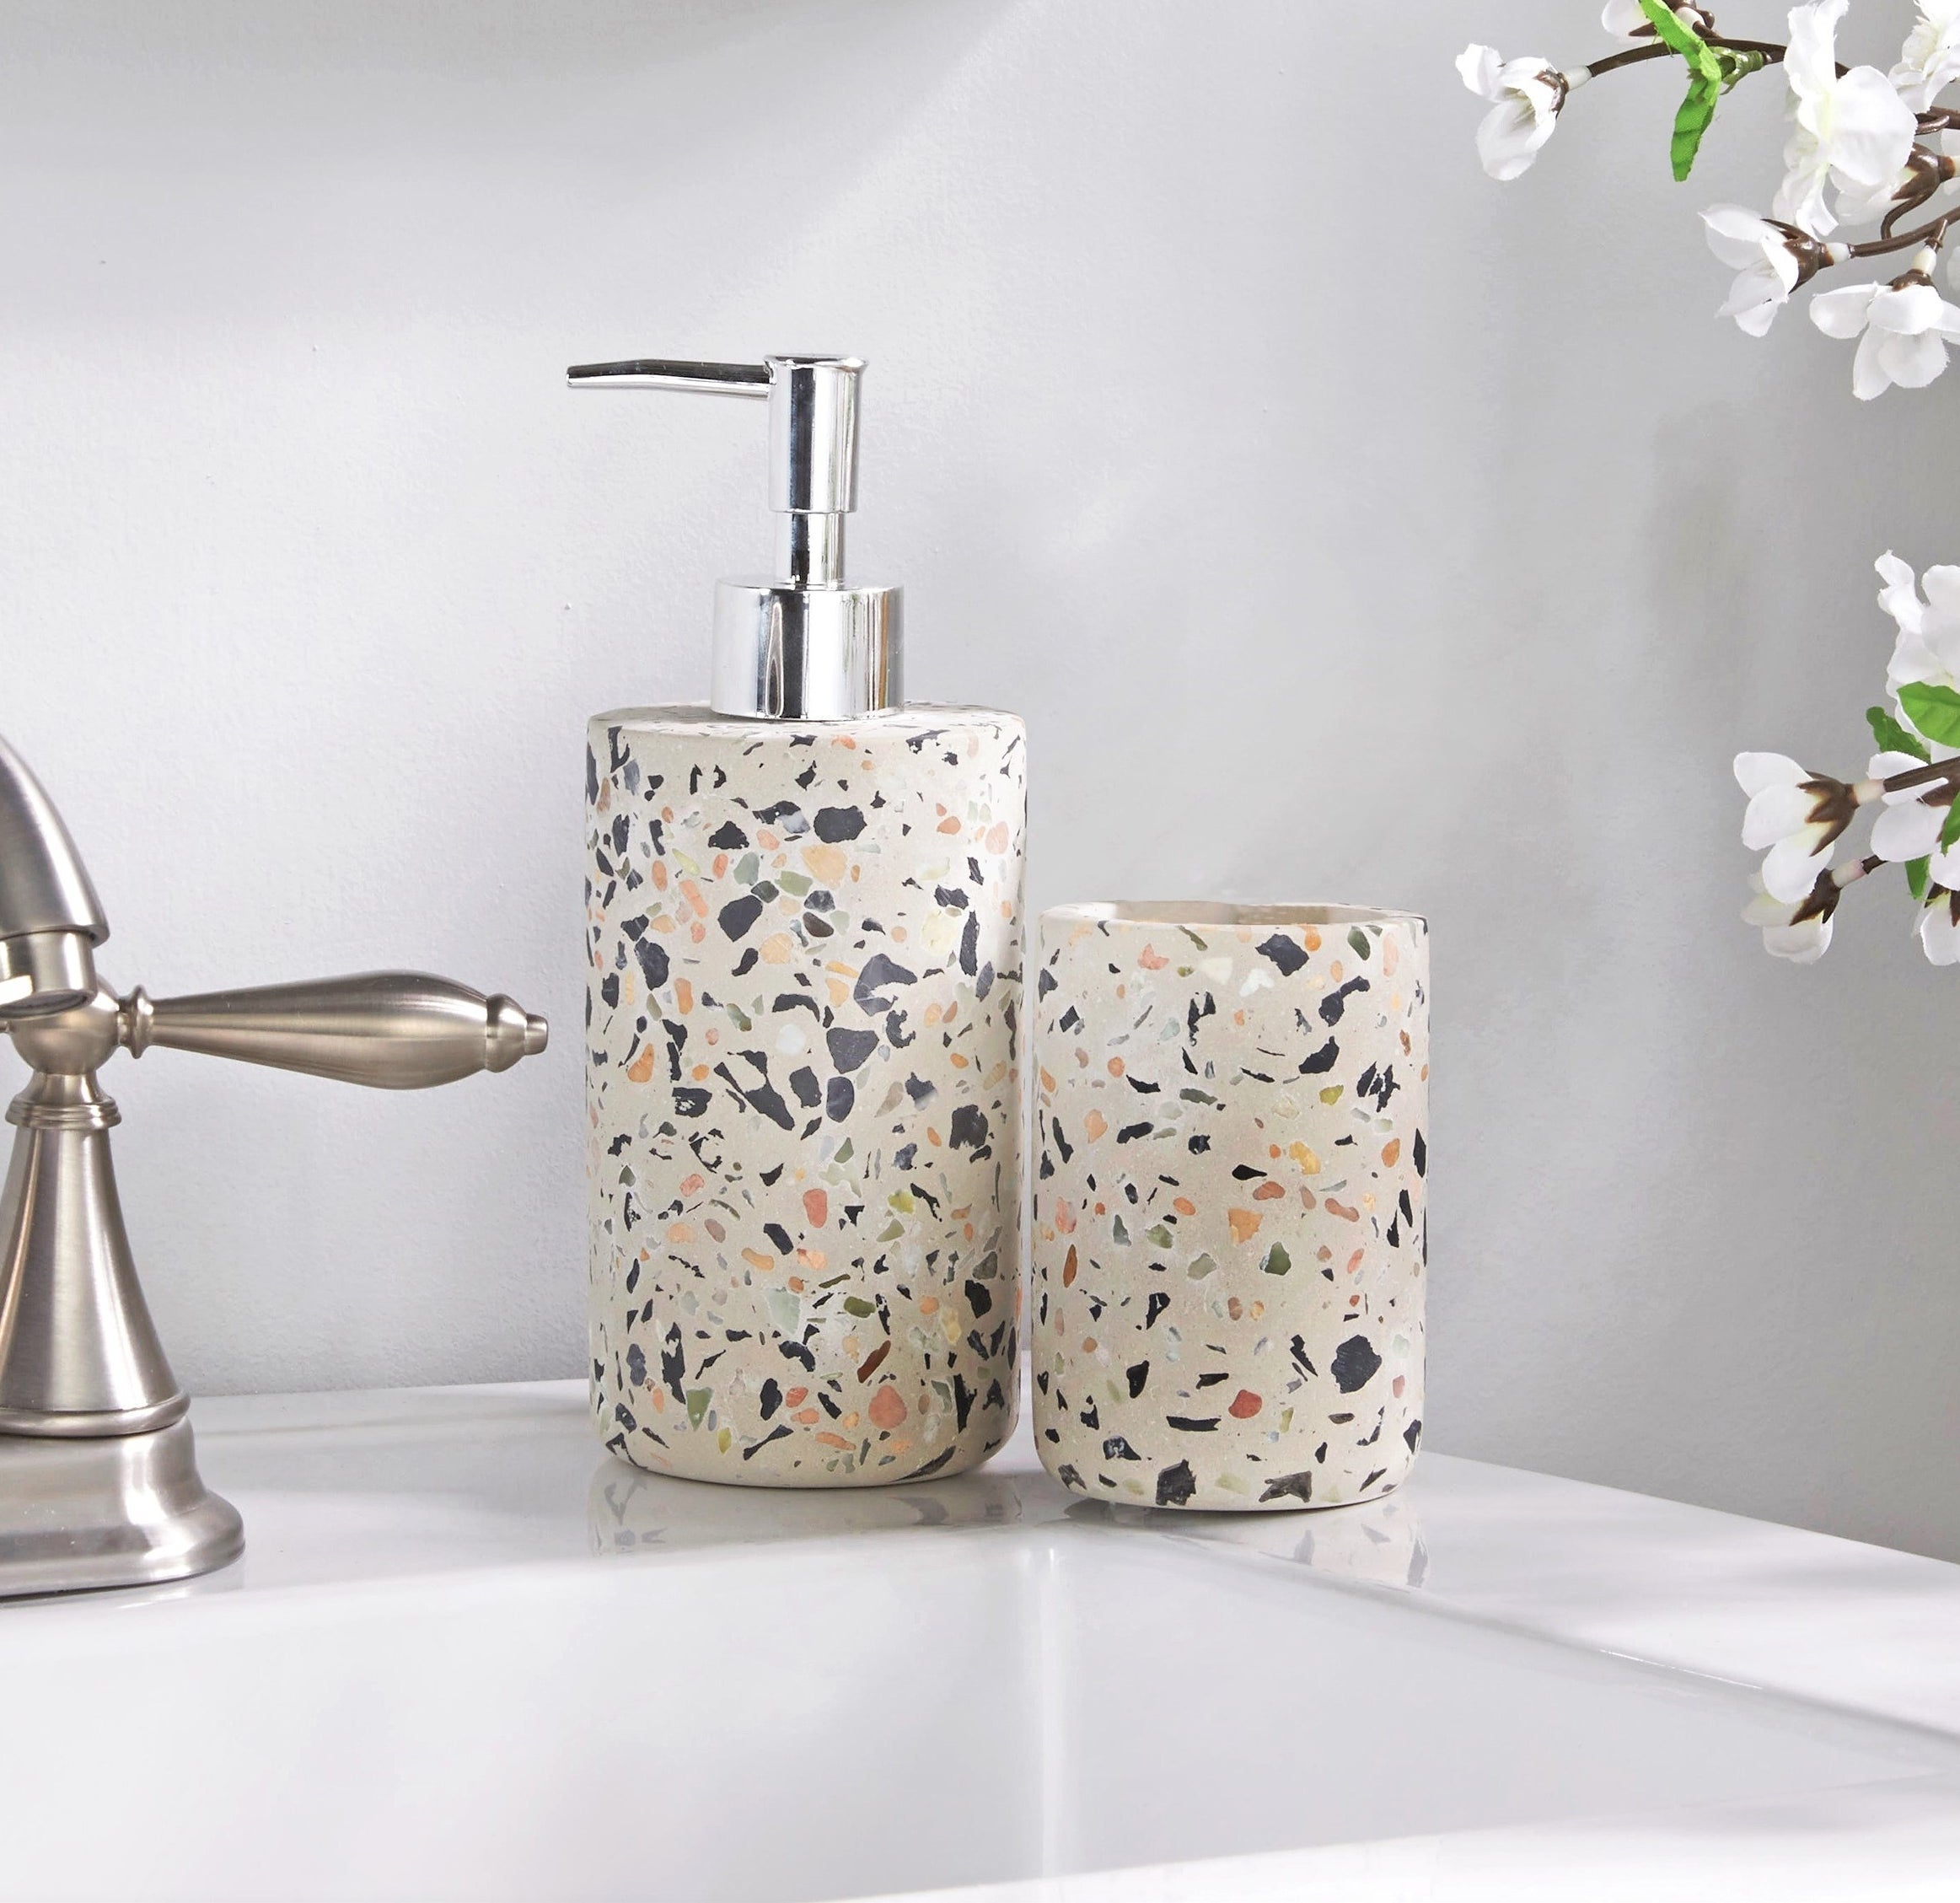 better homes and gardens soap dispenser and toothbrush holder